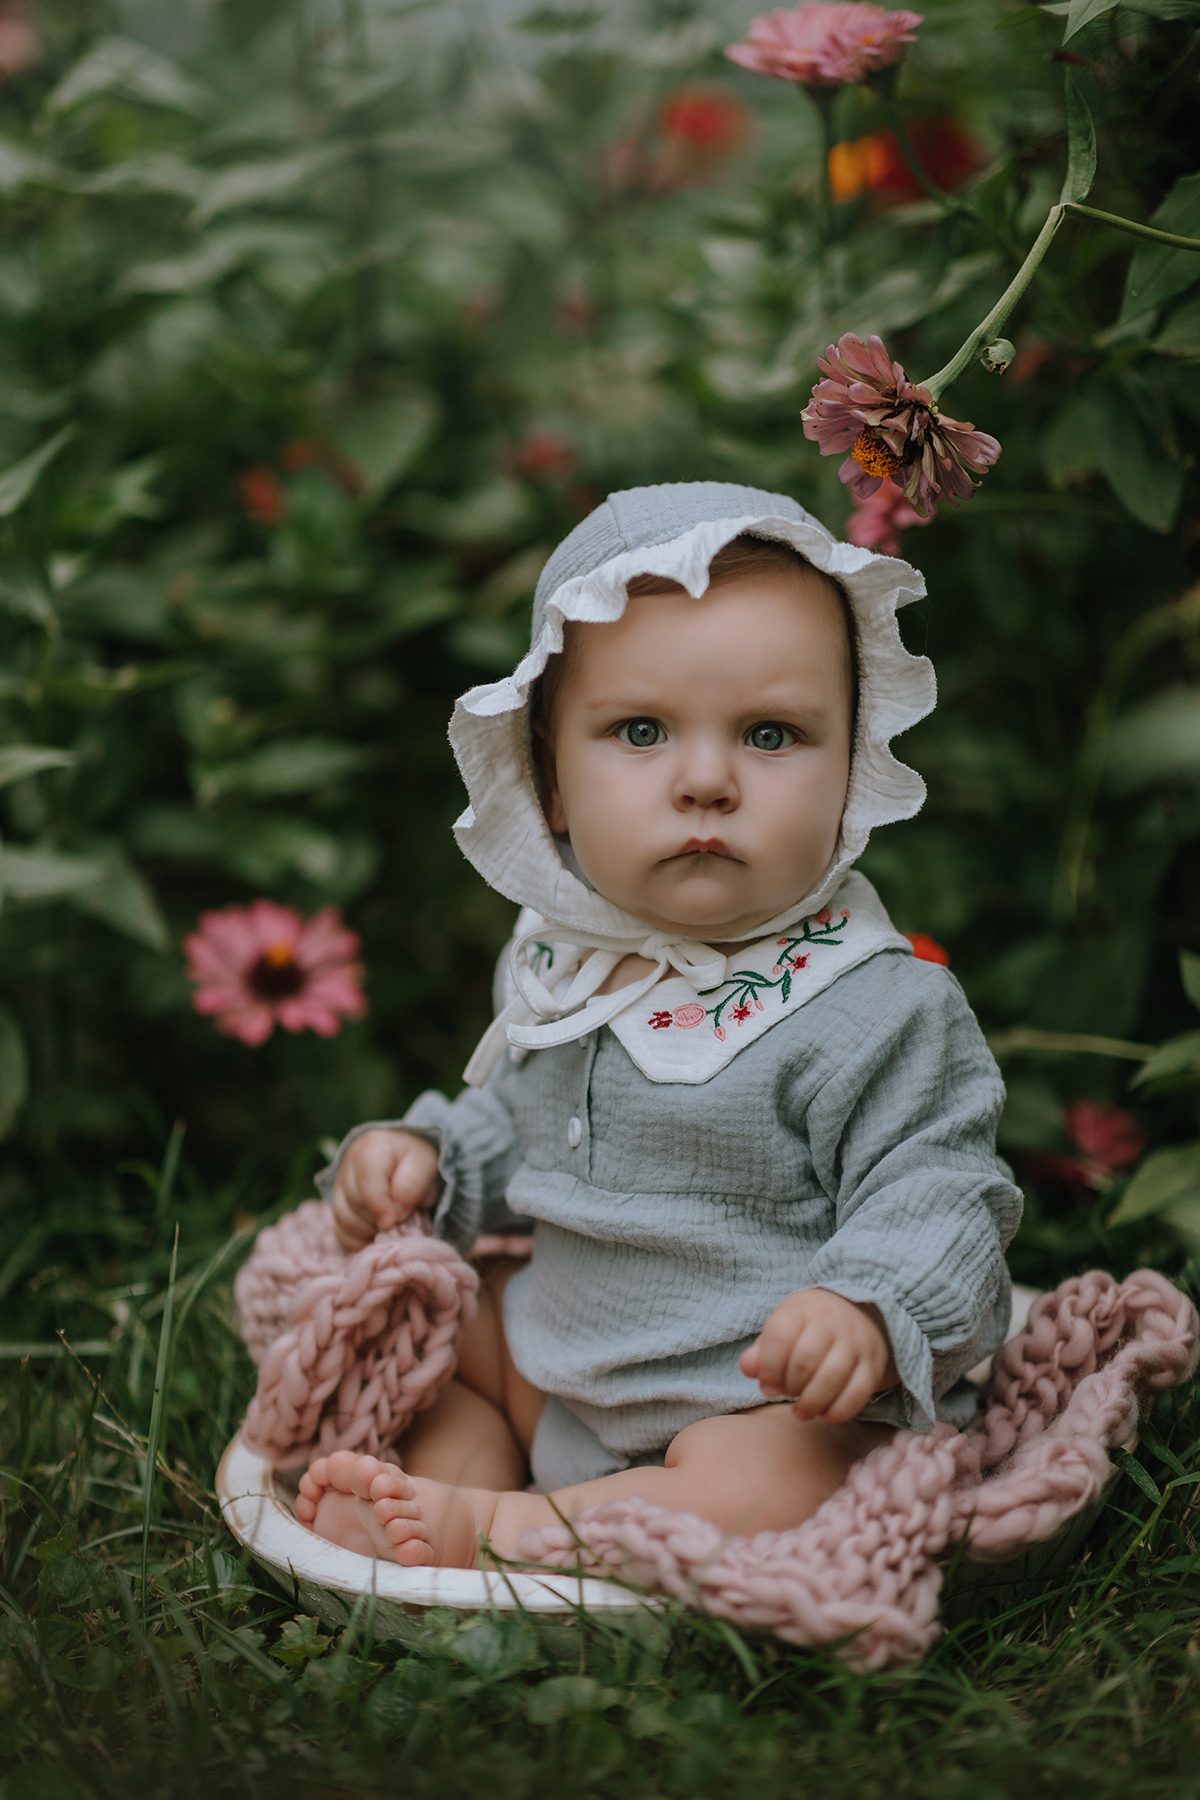 Baby in vintage outfit and bonnet with flowers